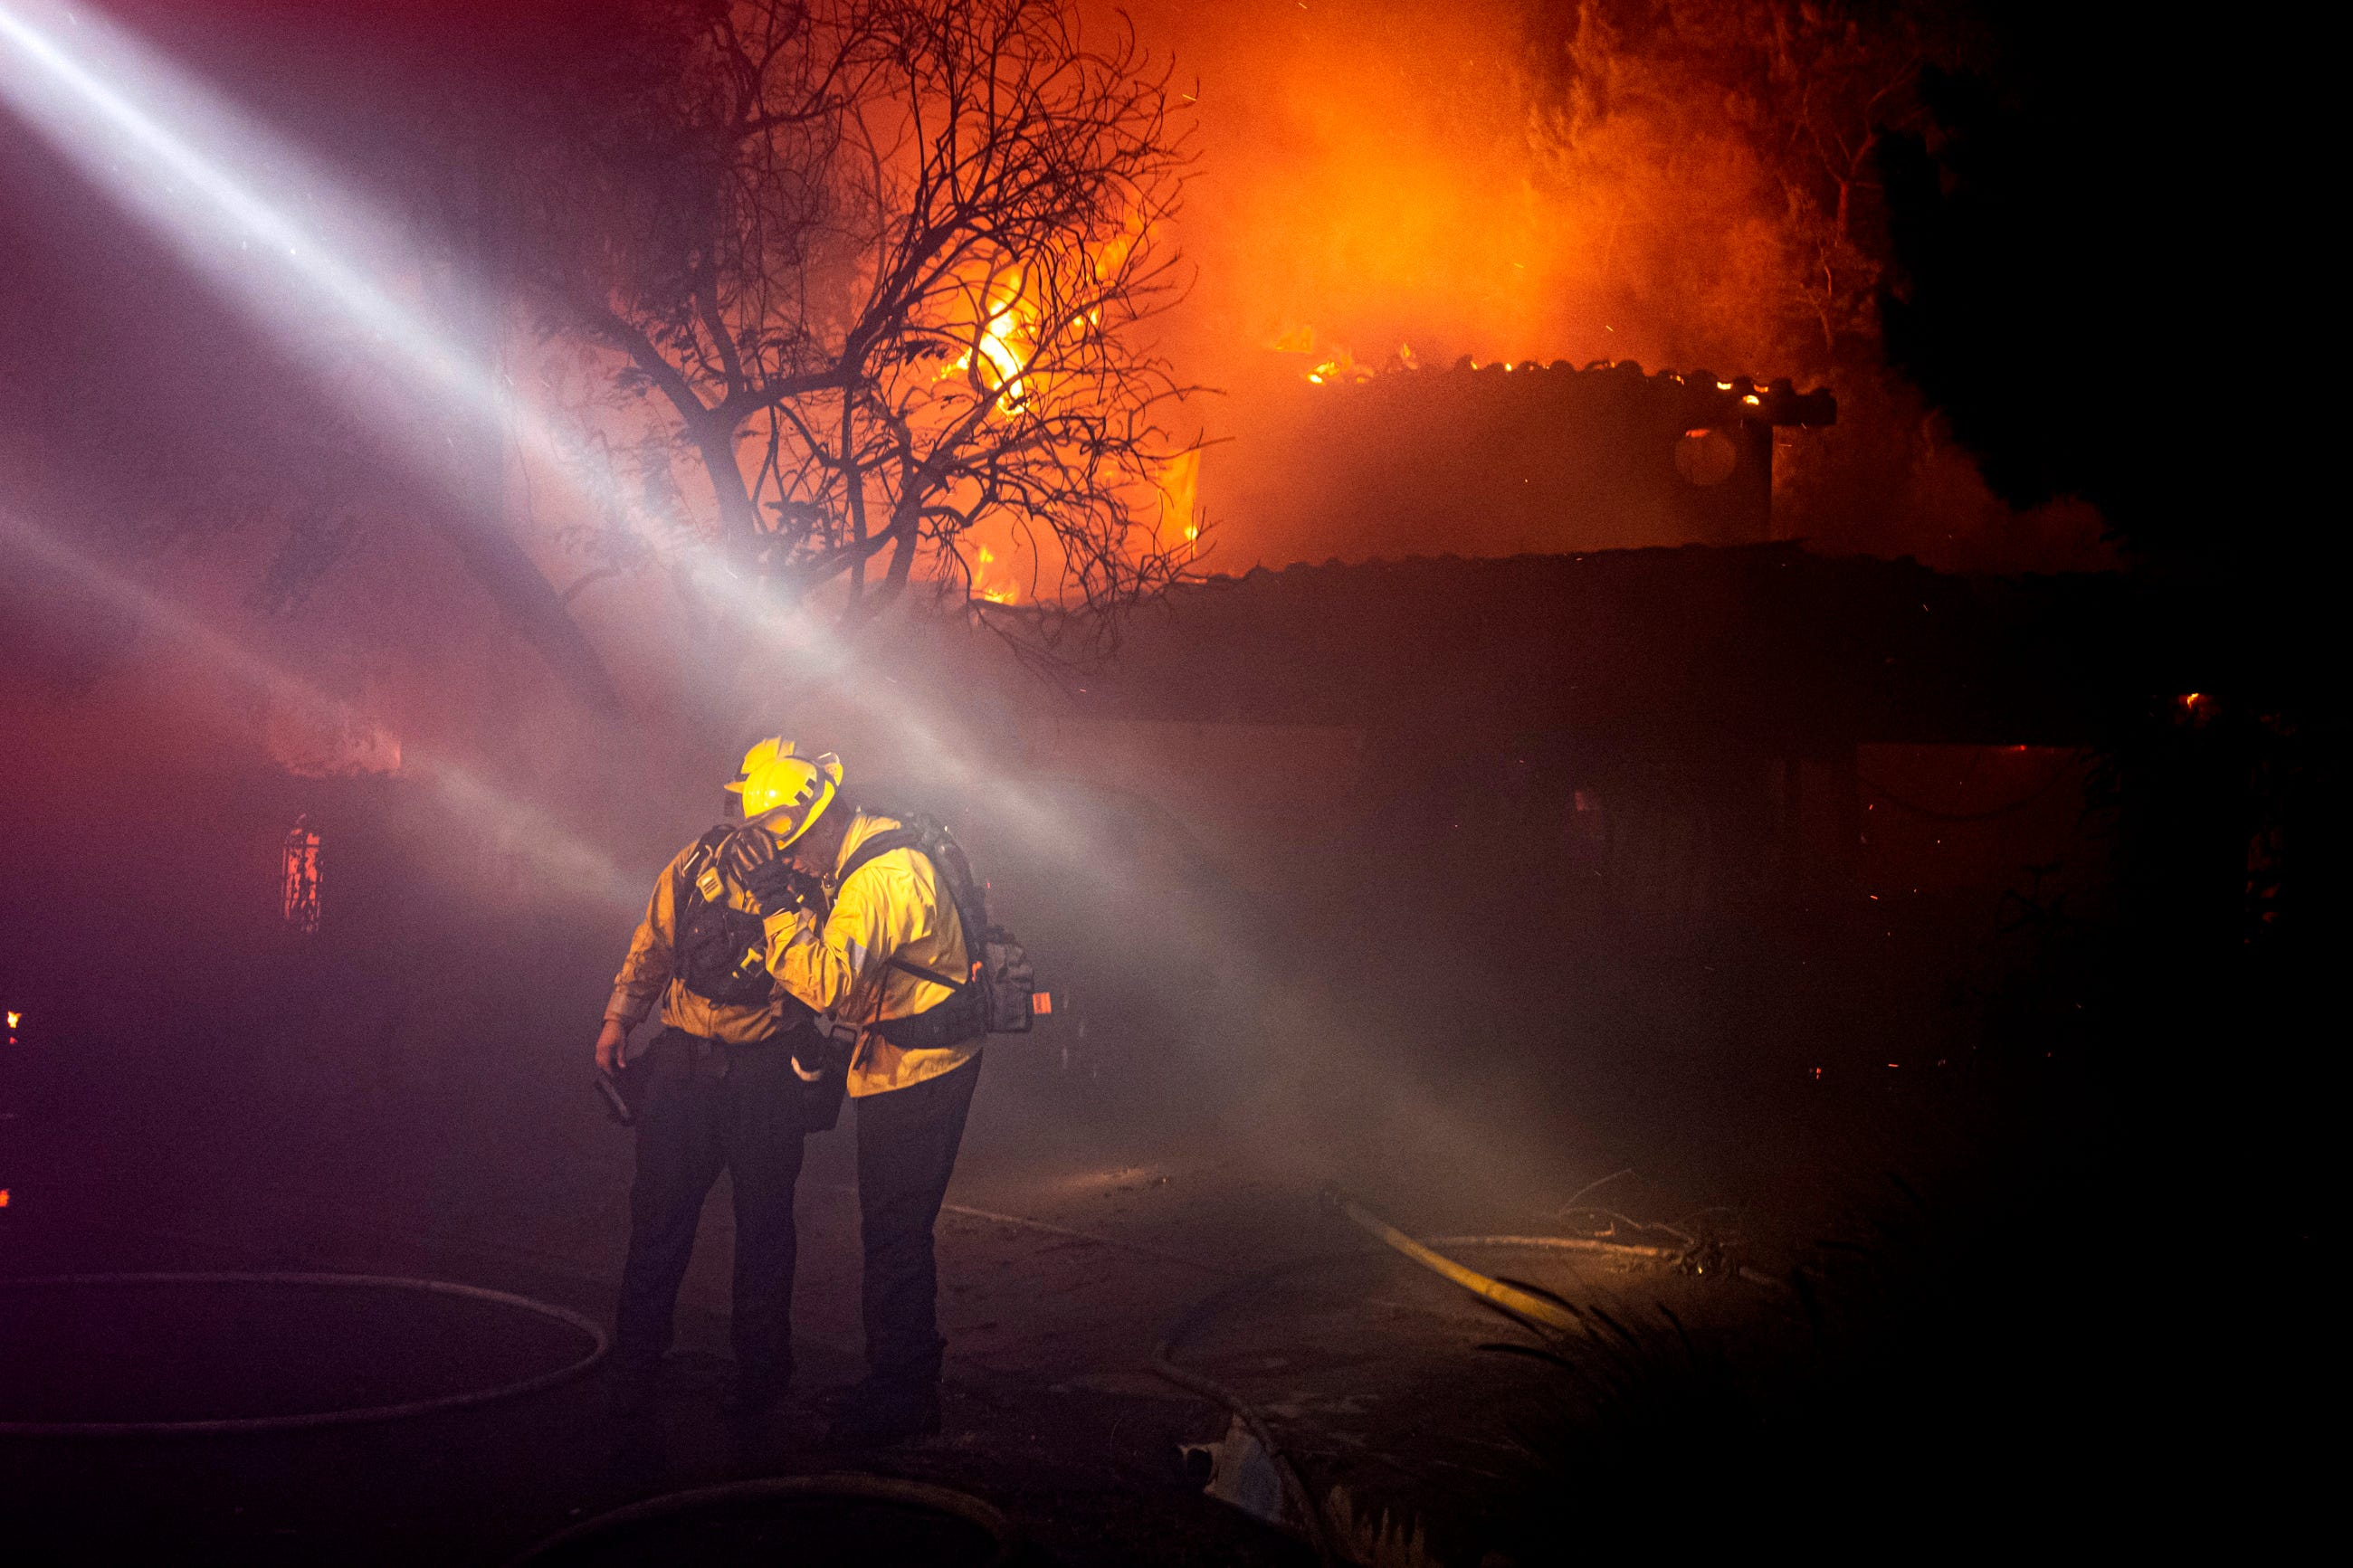 Saddleridge fire erupts overnight north of LA, consuming 4,600 acres and forcing thousands to evacuate